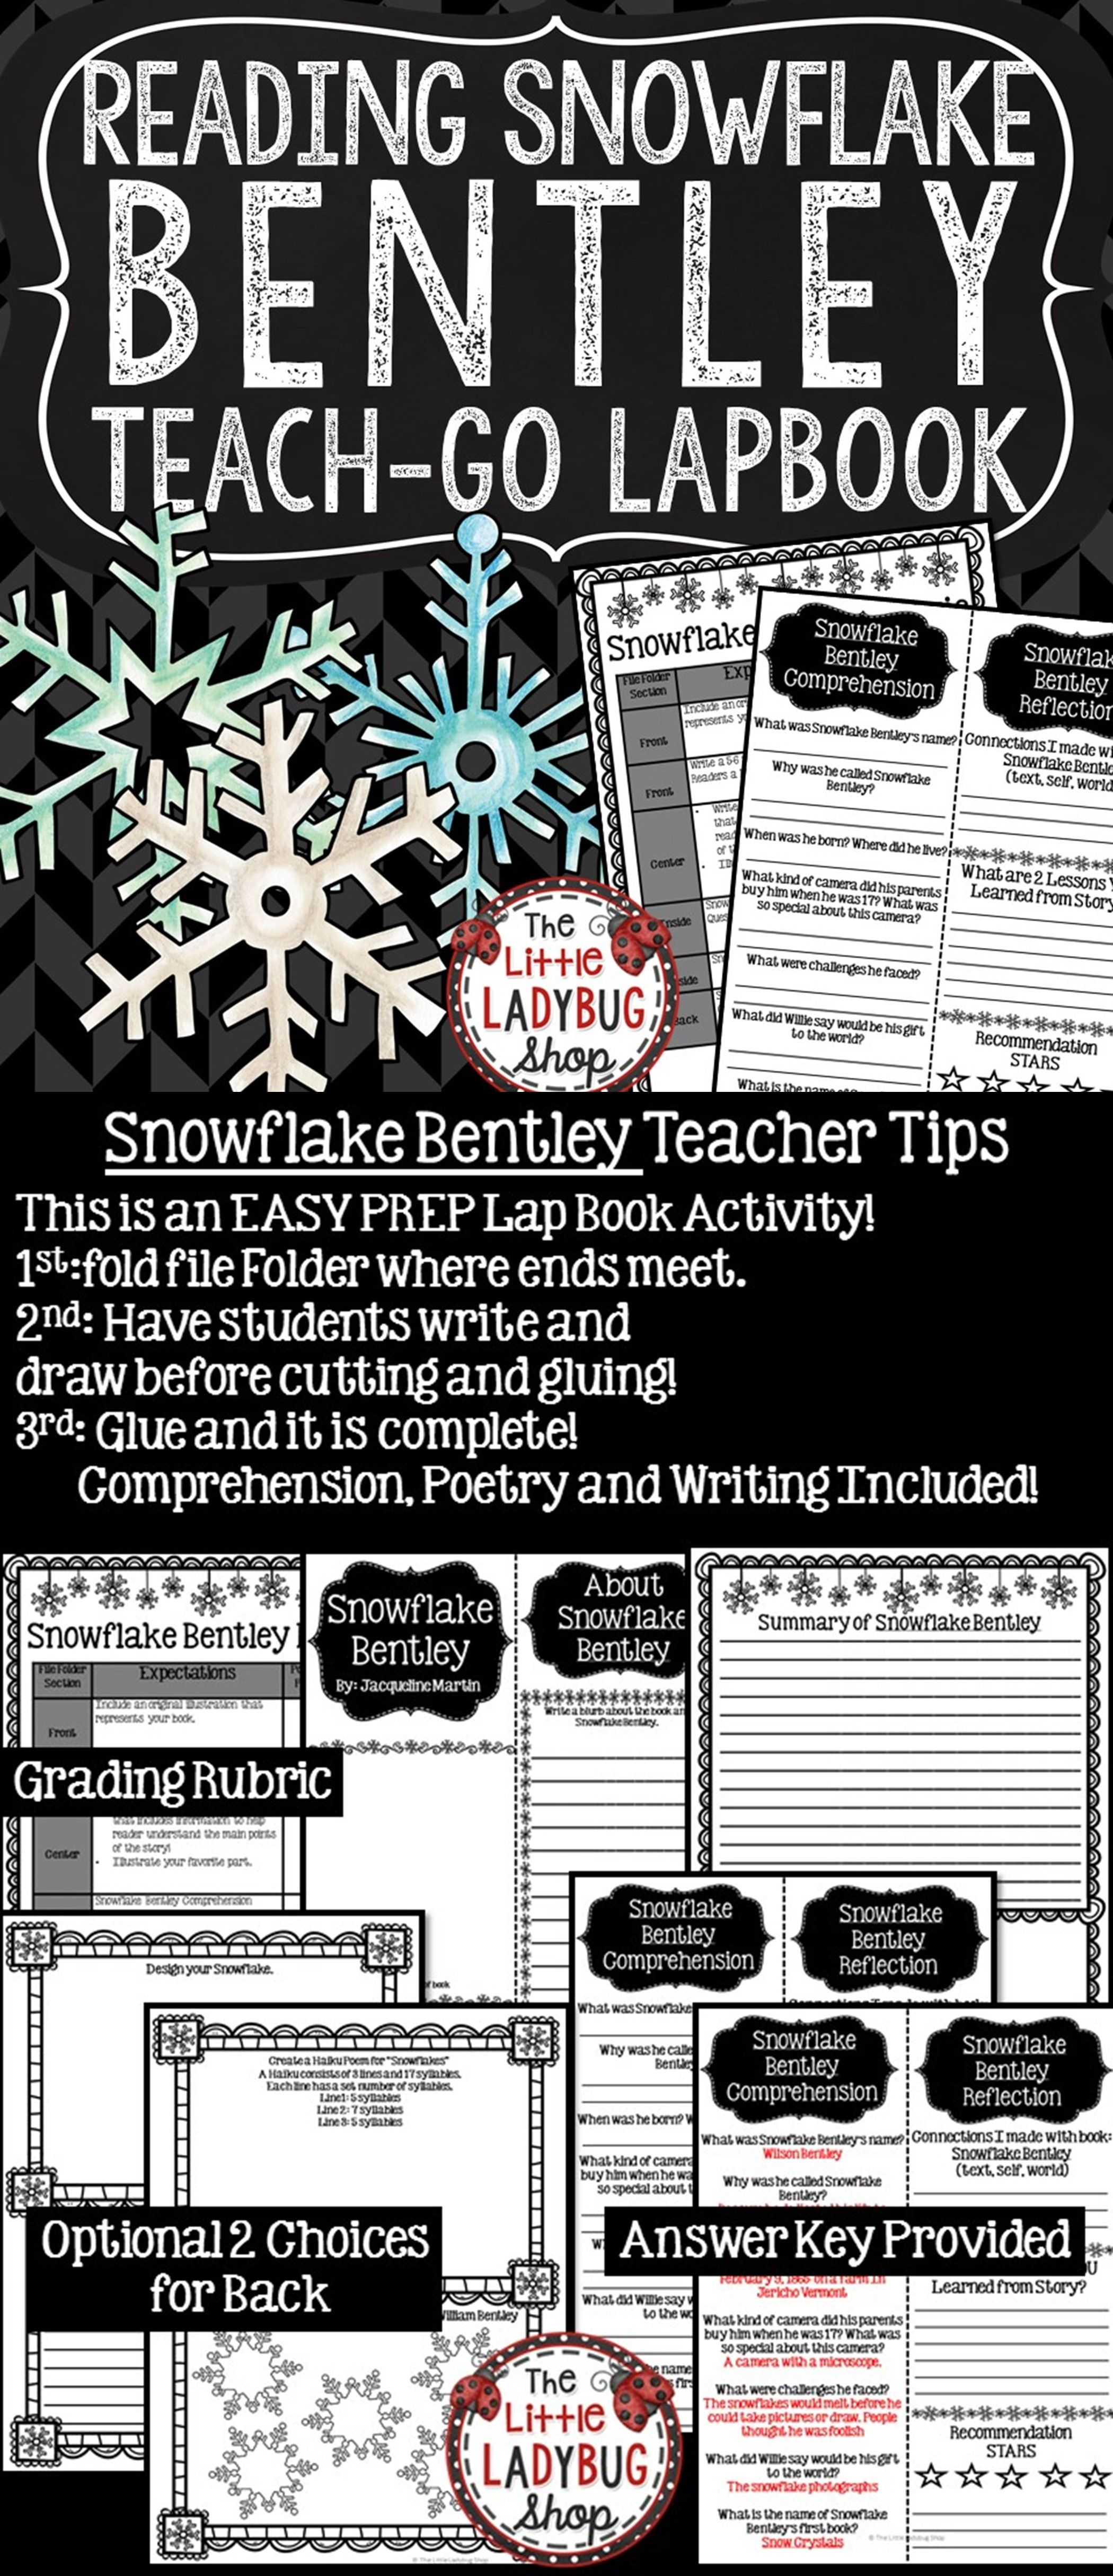 science as activities book ideas and bentley art snow snowflake for extension